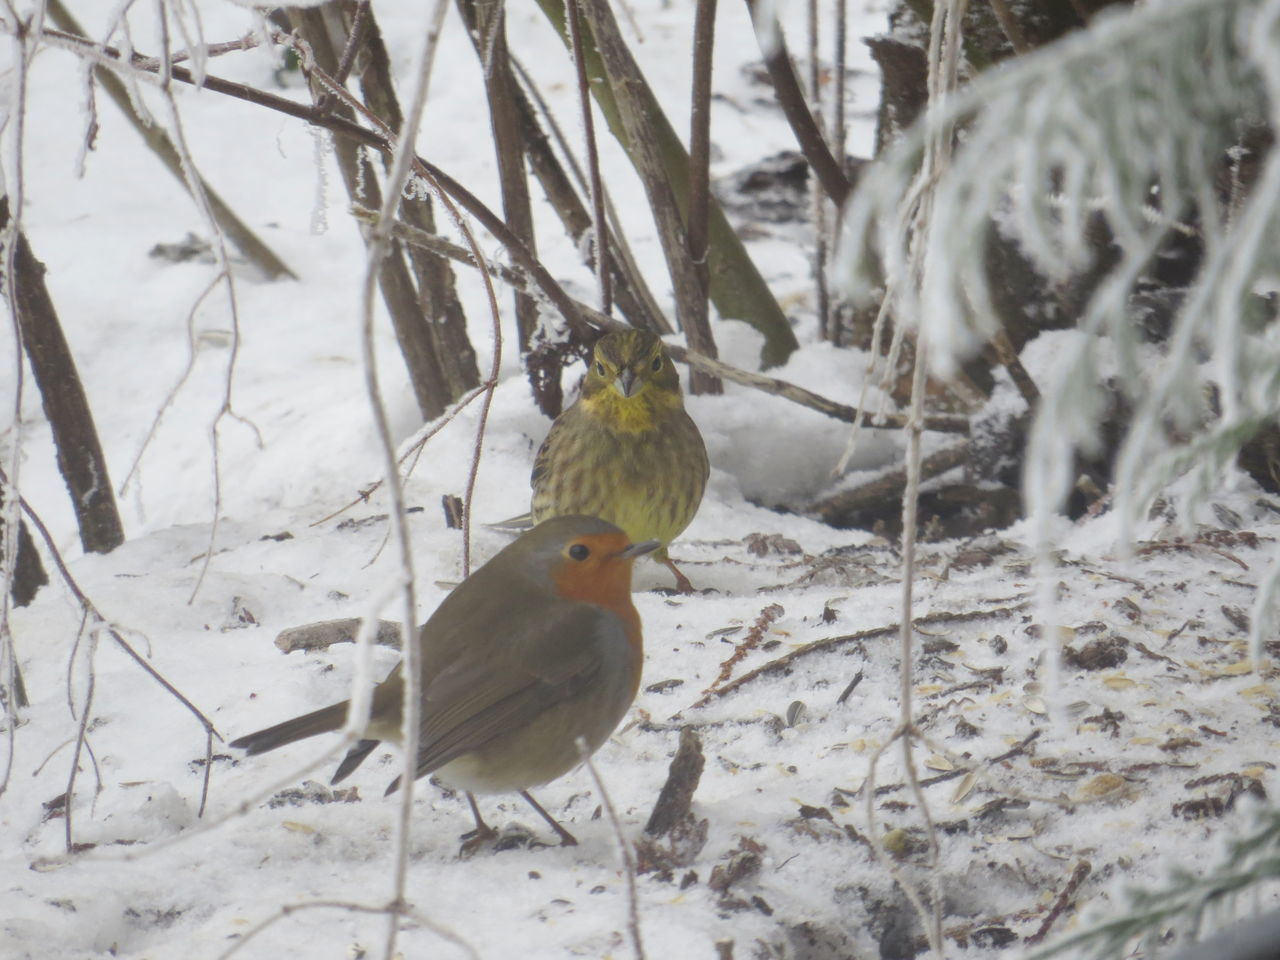 Robin and Yellowhammer Animals Animals In The Wild Bird Cold Temperature No People Outdoors Perching Robin Snowy Winter Yellowhammer Animal Themes Capture The Moment Save The Nature From My Point Of View Taking Photos Animal Wildlife Nature Snow